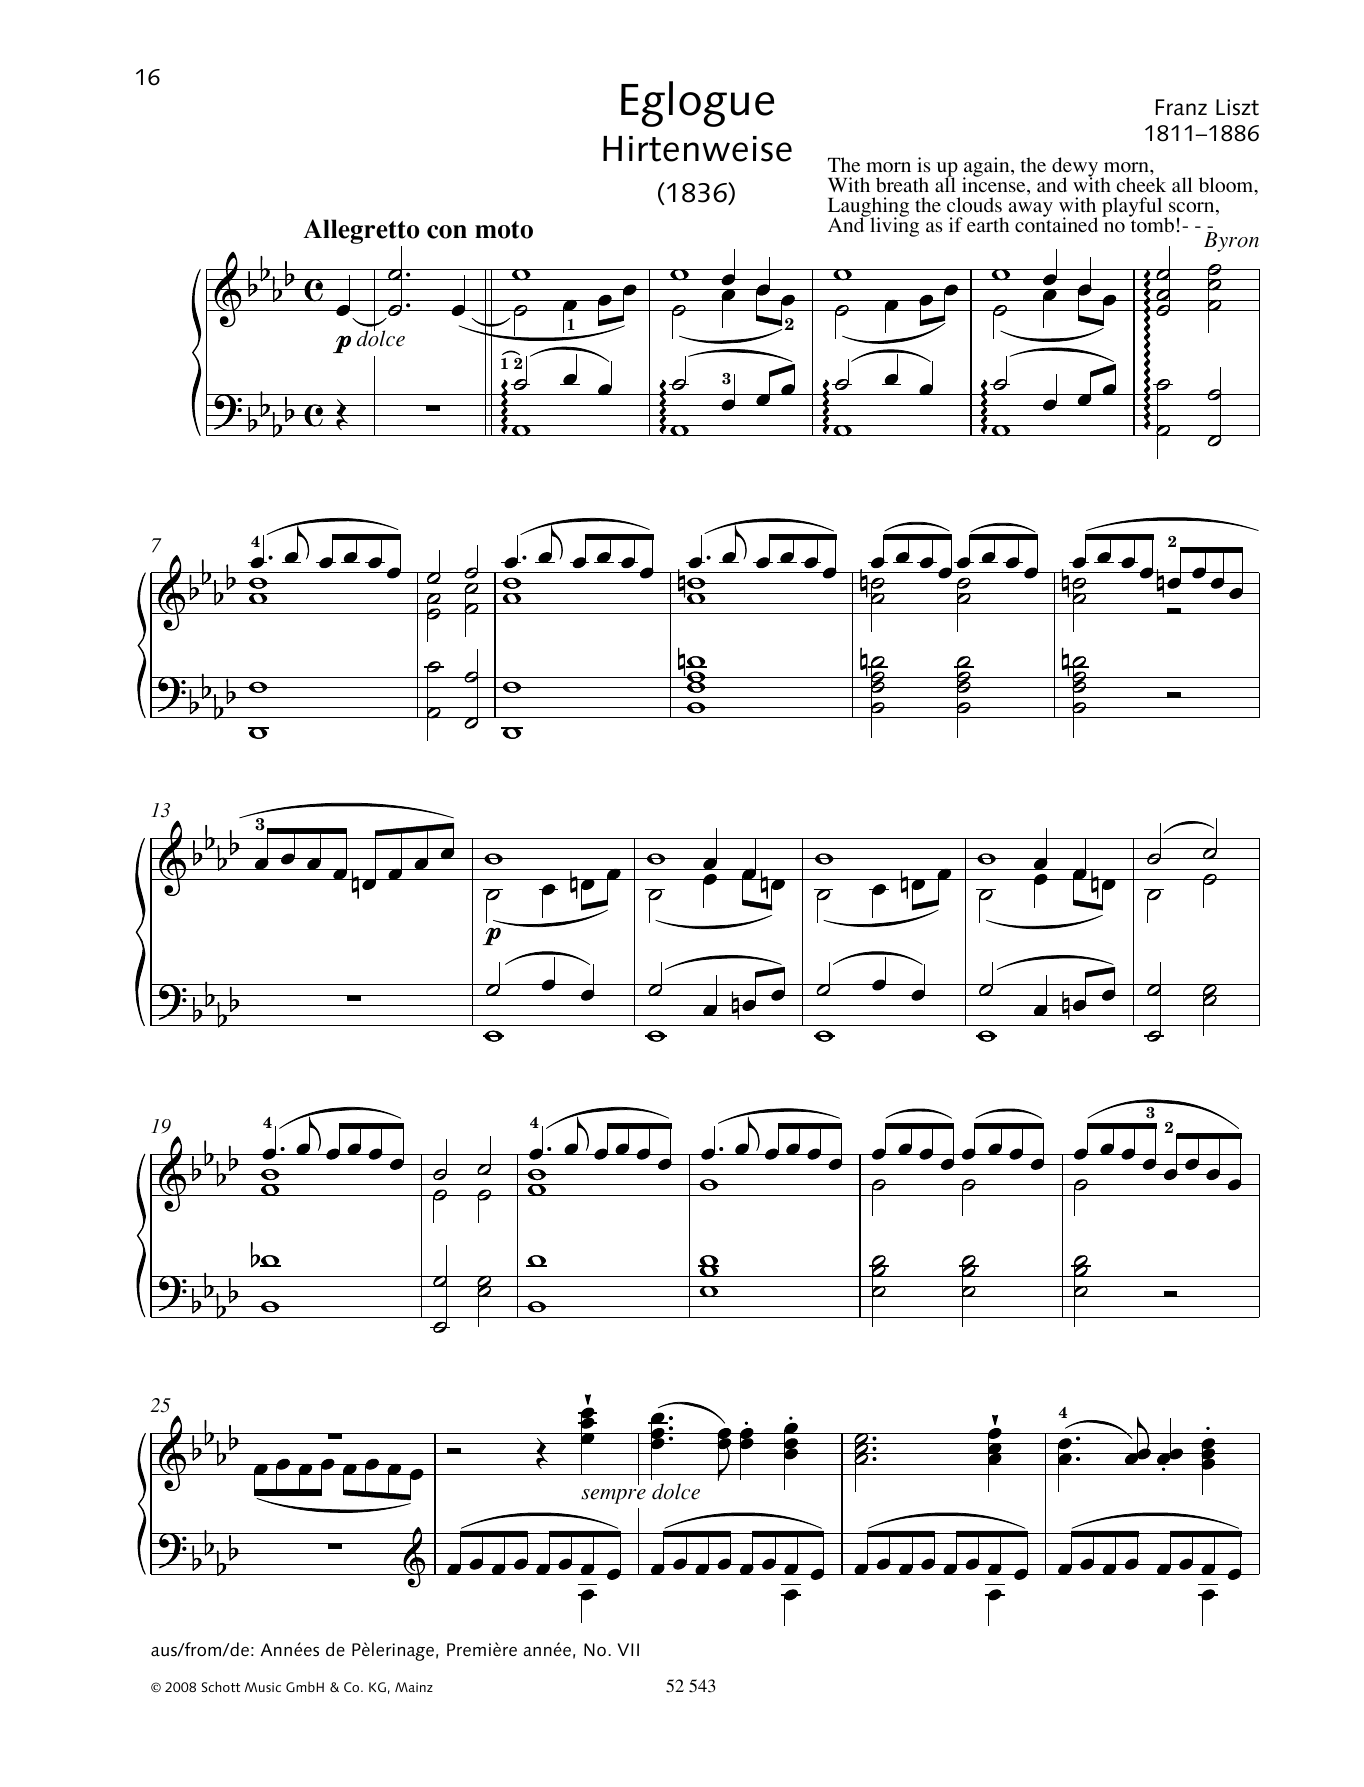 Eglogue (Hirtenweise) Sheet Music